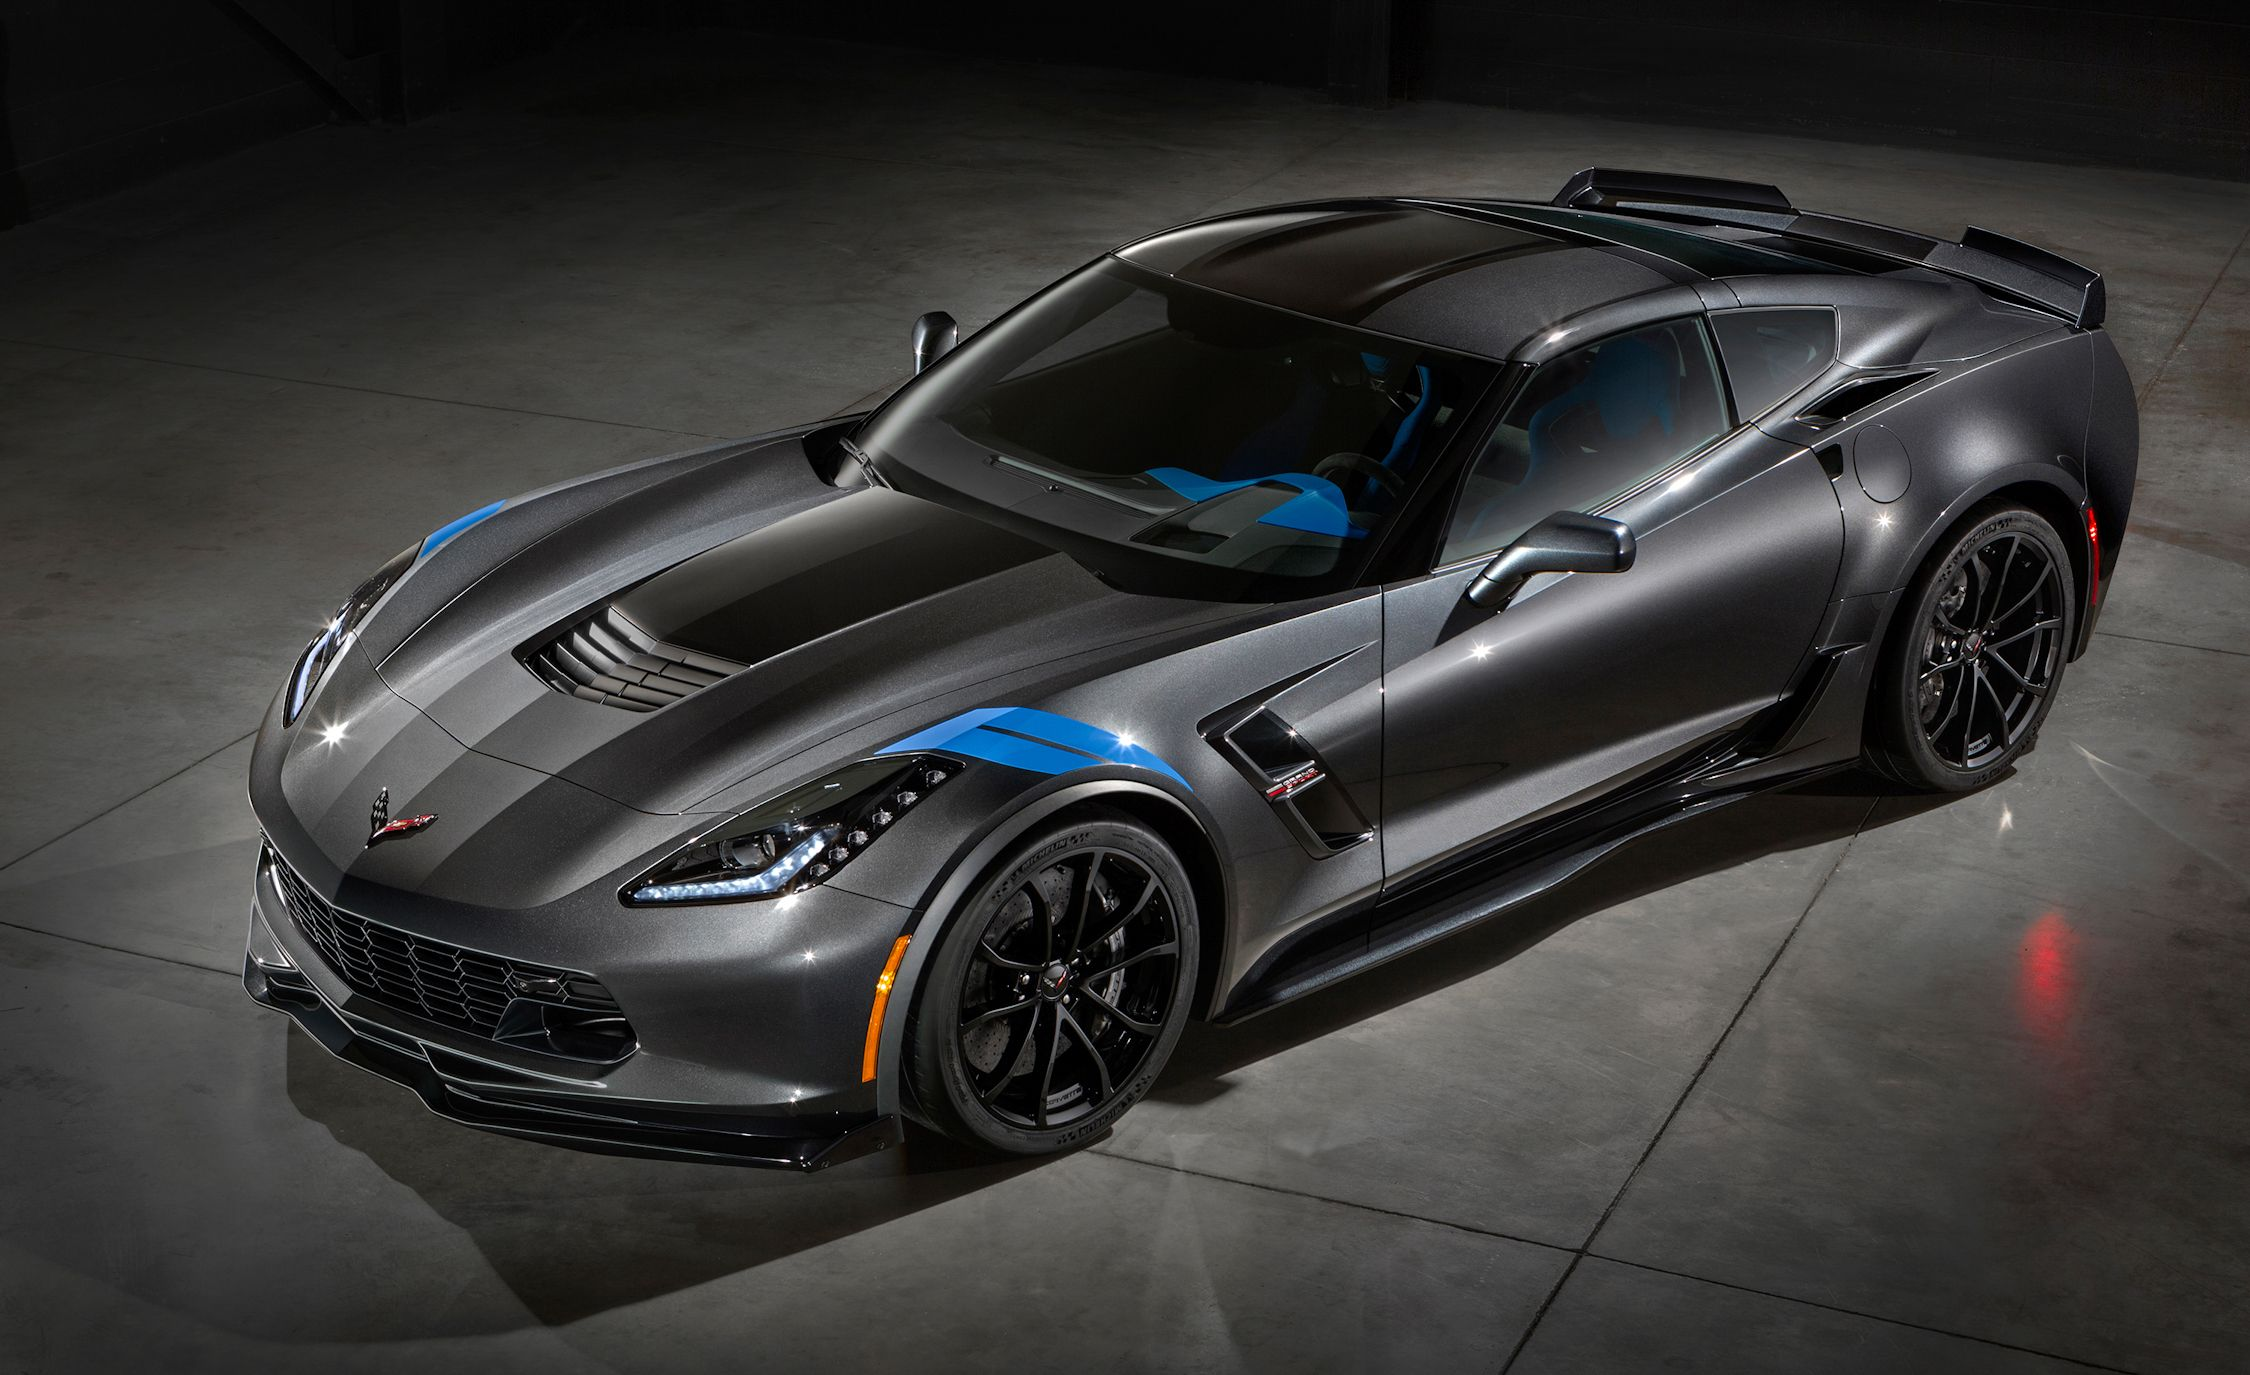 Image result for images of 2017 corvette